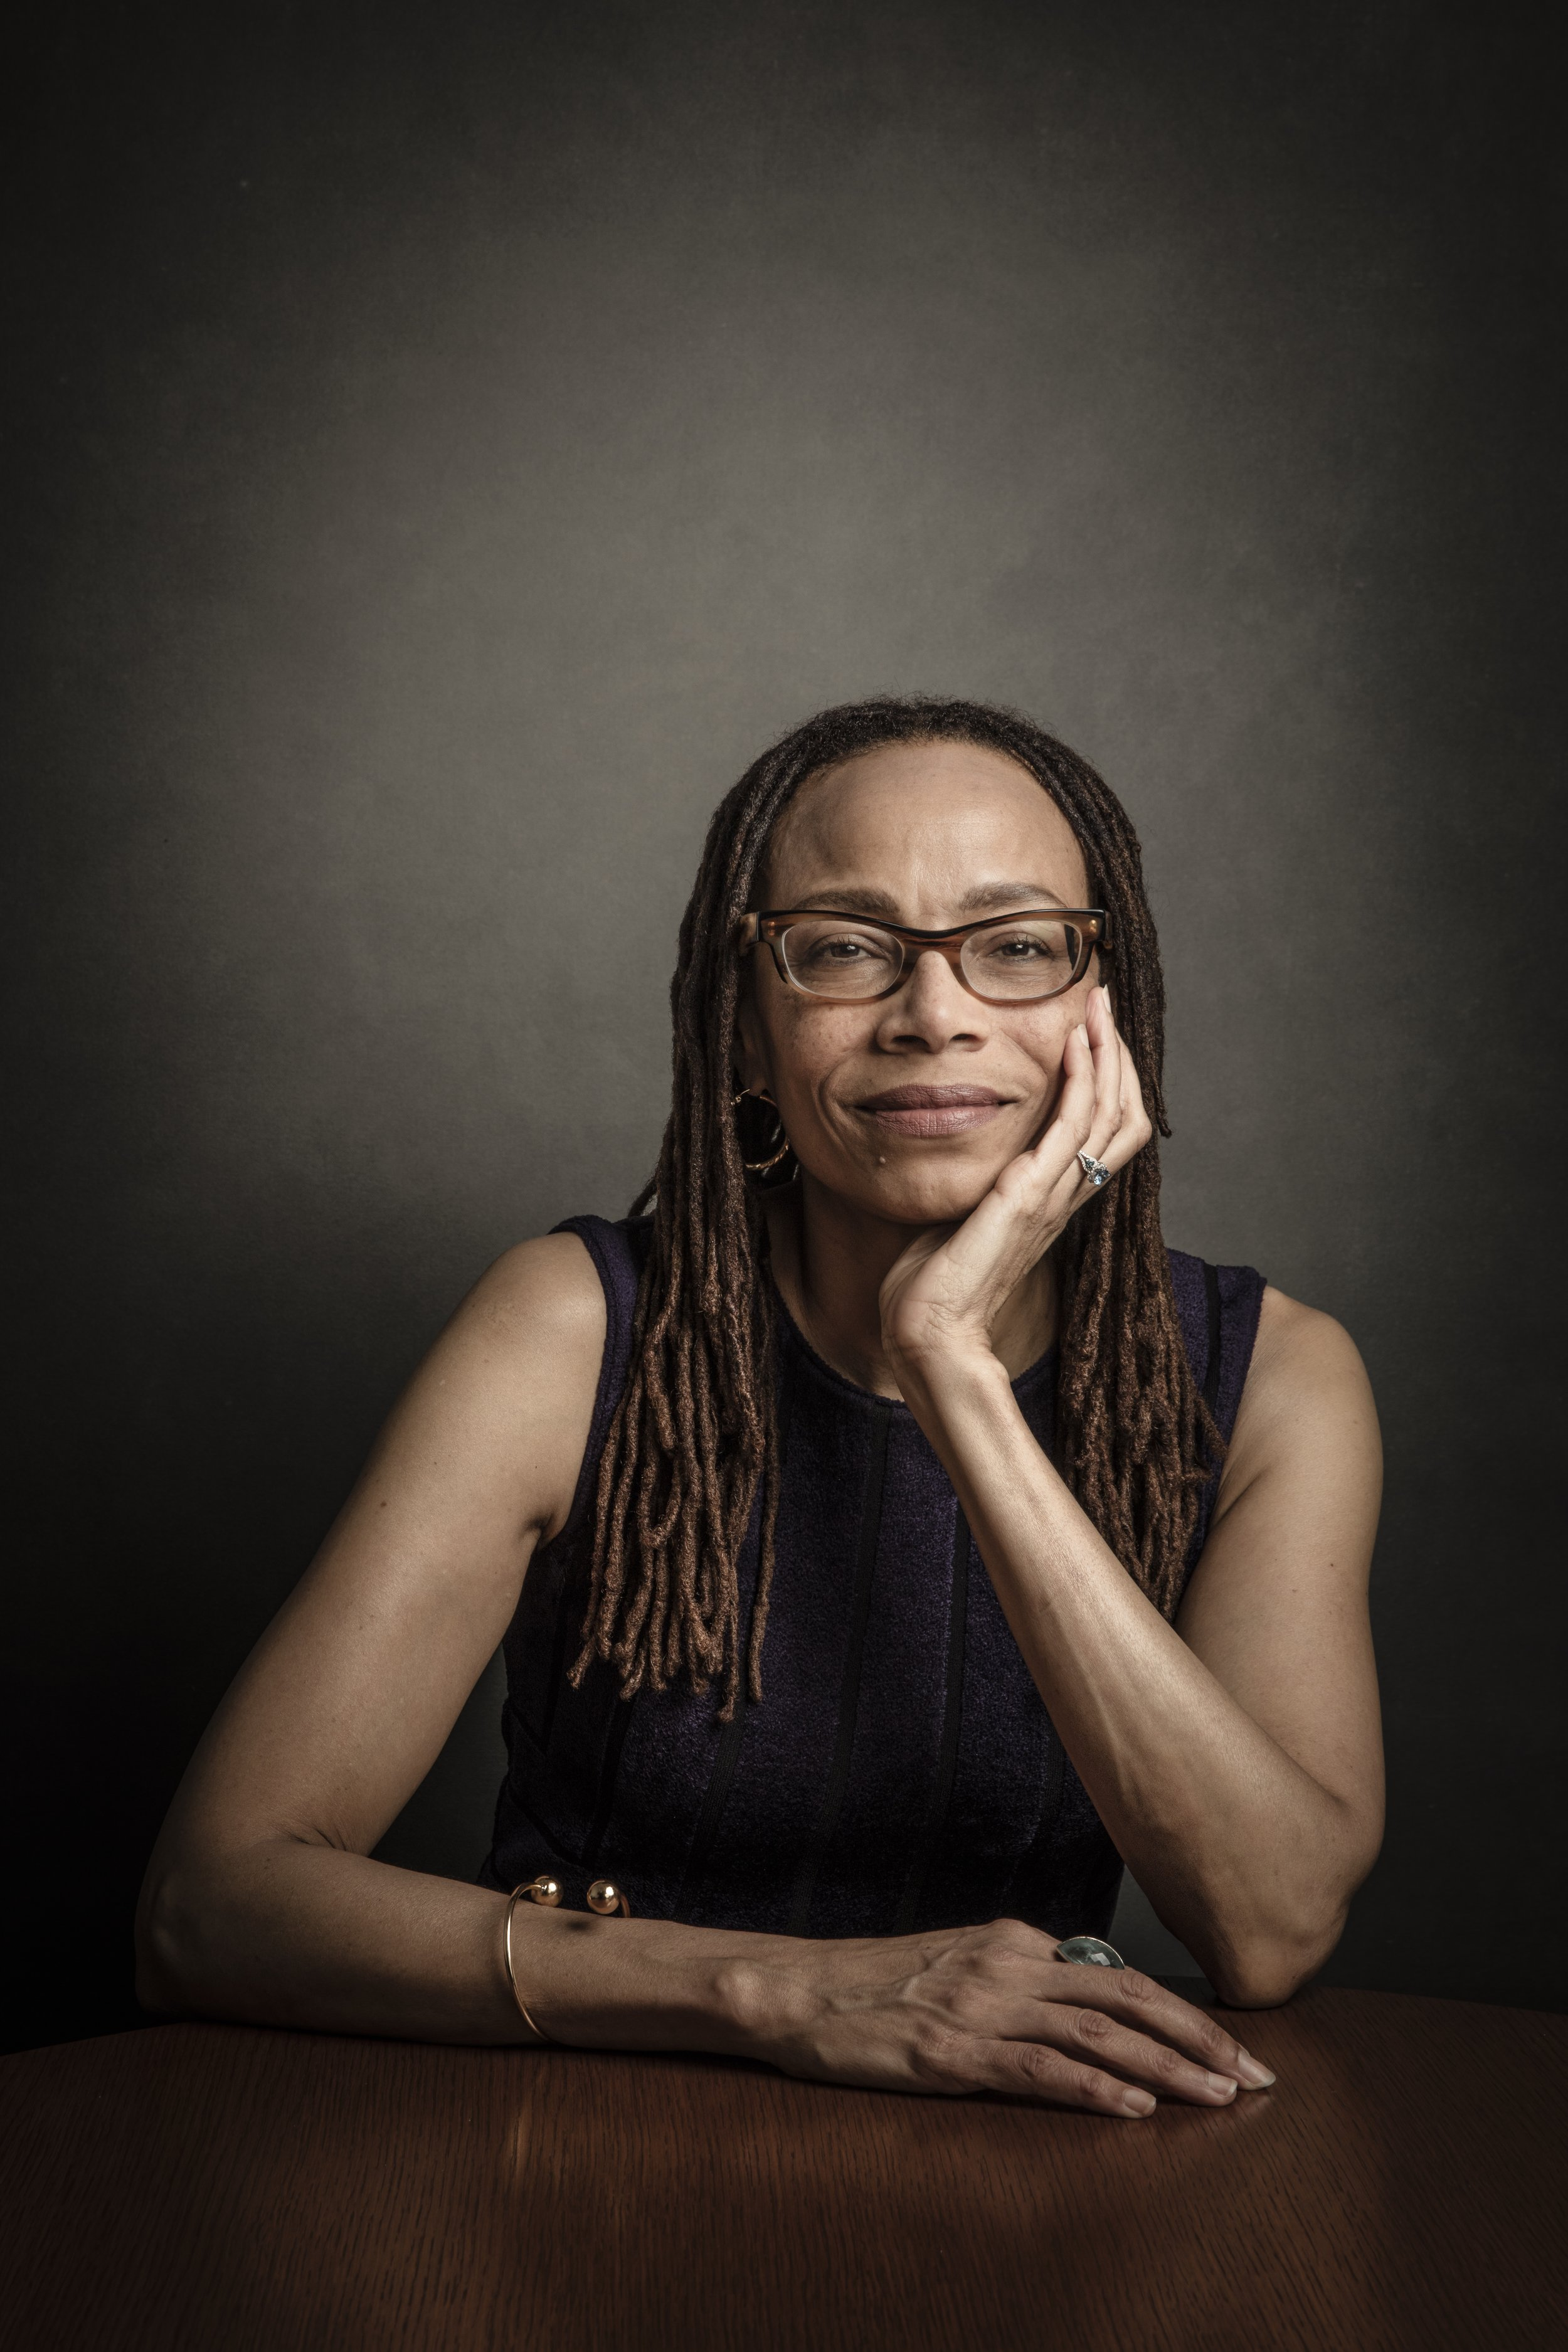 """Dorothy Roberts: George A. Weiss University Professor of Law & Sociology, University of pennsylvania   What Owning It Means to Her: """"""""Owning it"""" means working for a more just and humane world where all women can reach their full potential as equally valuable human beings."""""""